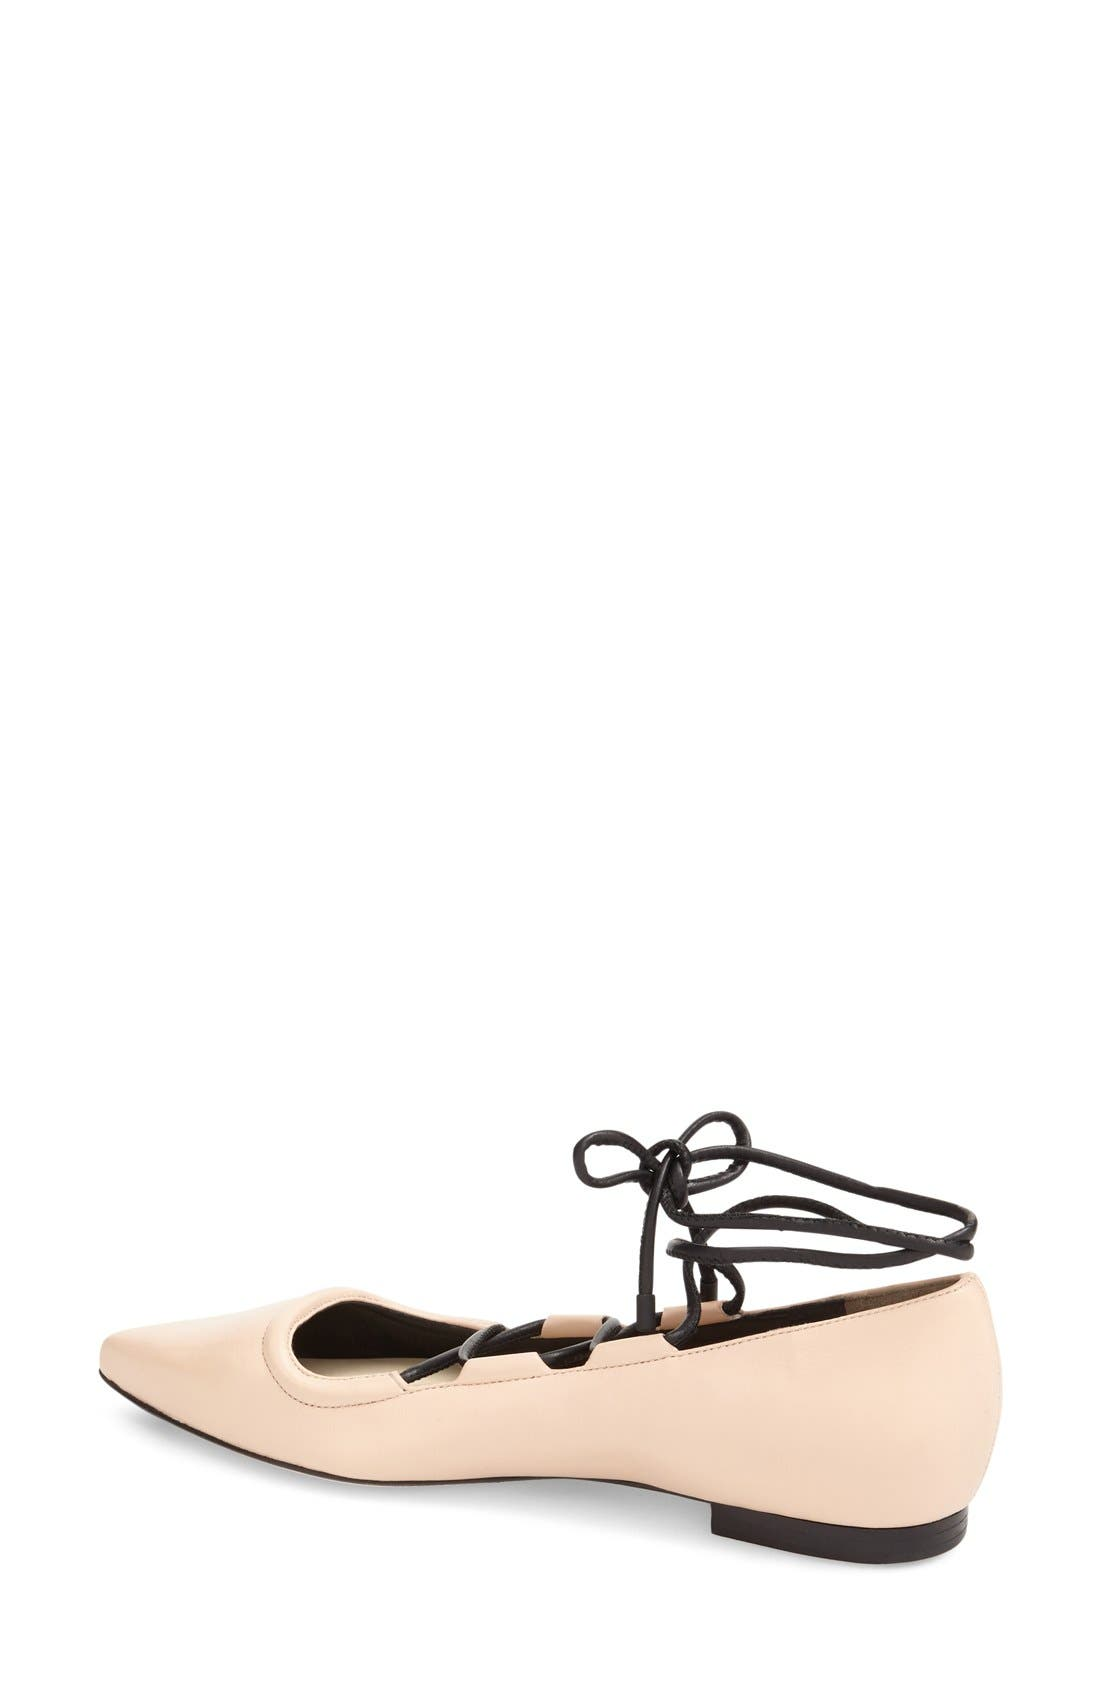 Alternate Image 2  - 3.1 Phillip Lim 'Martini' Lace-Up Flat (Women)